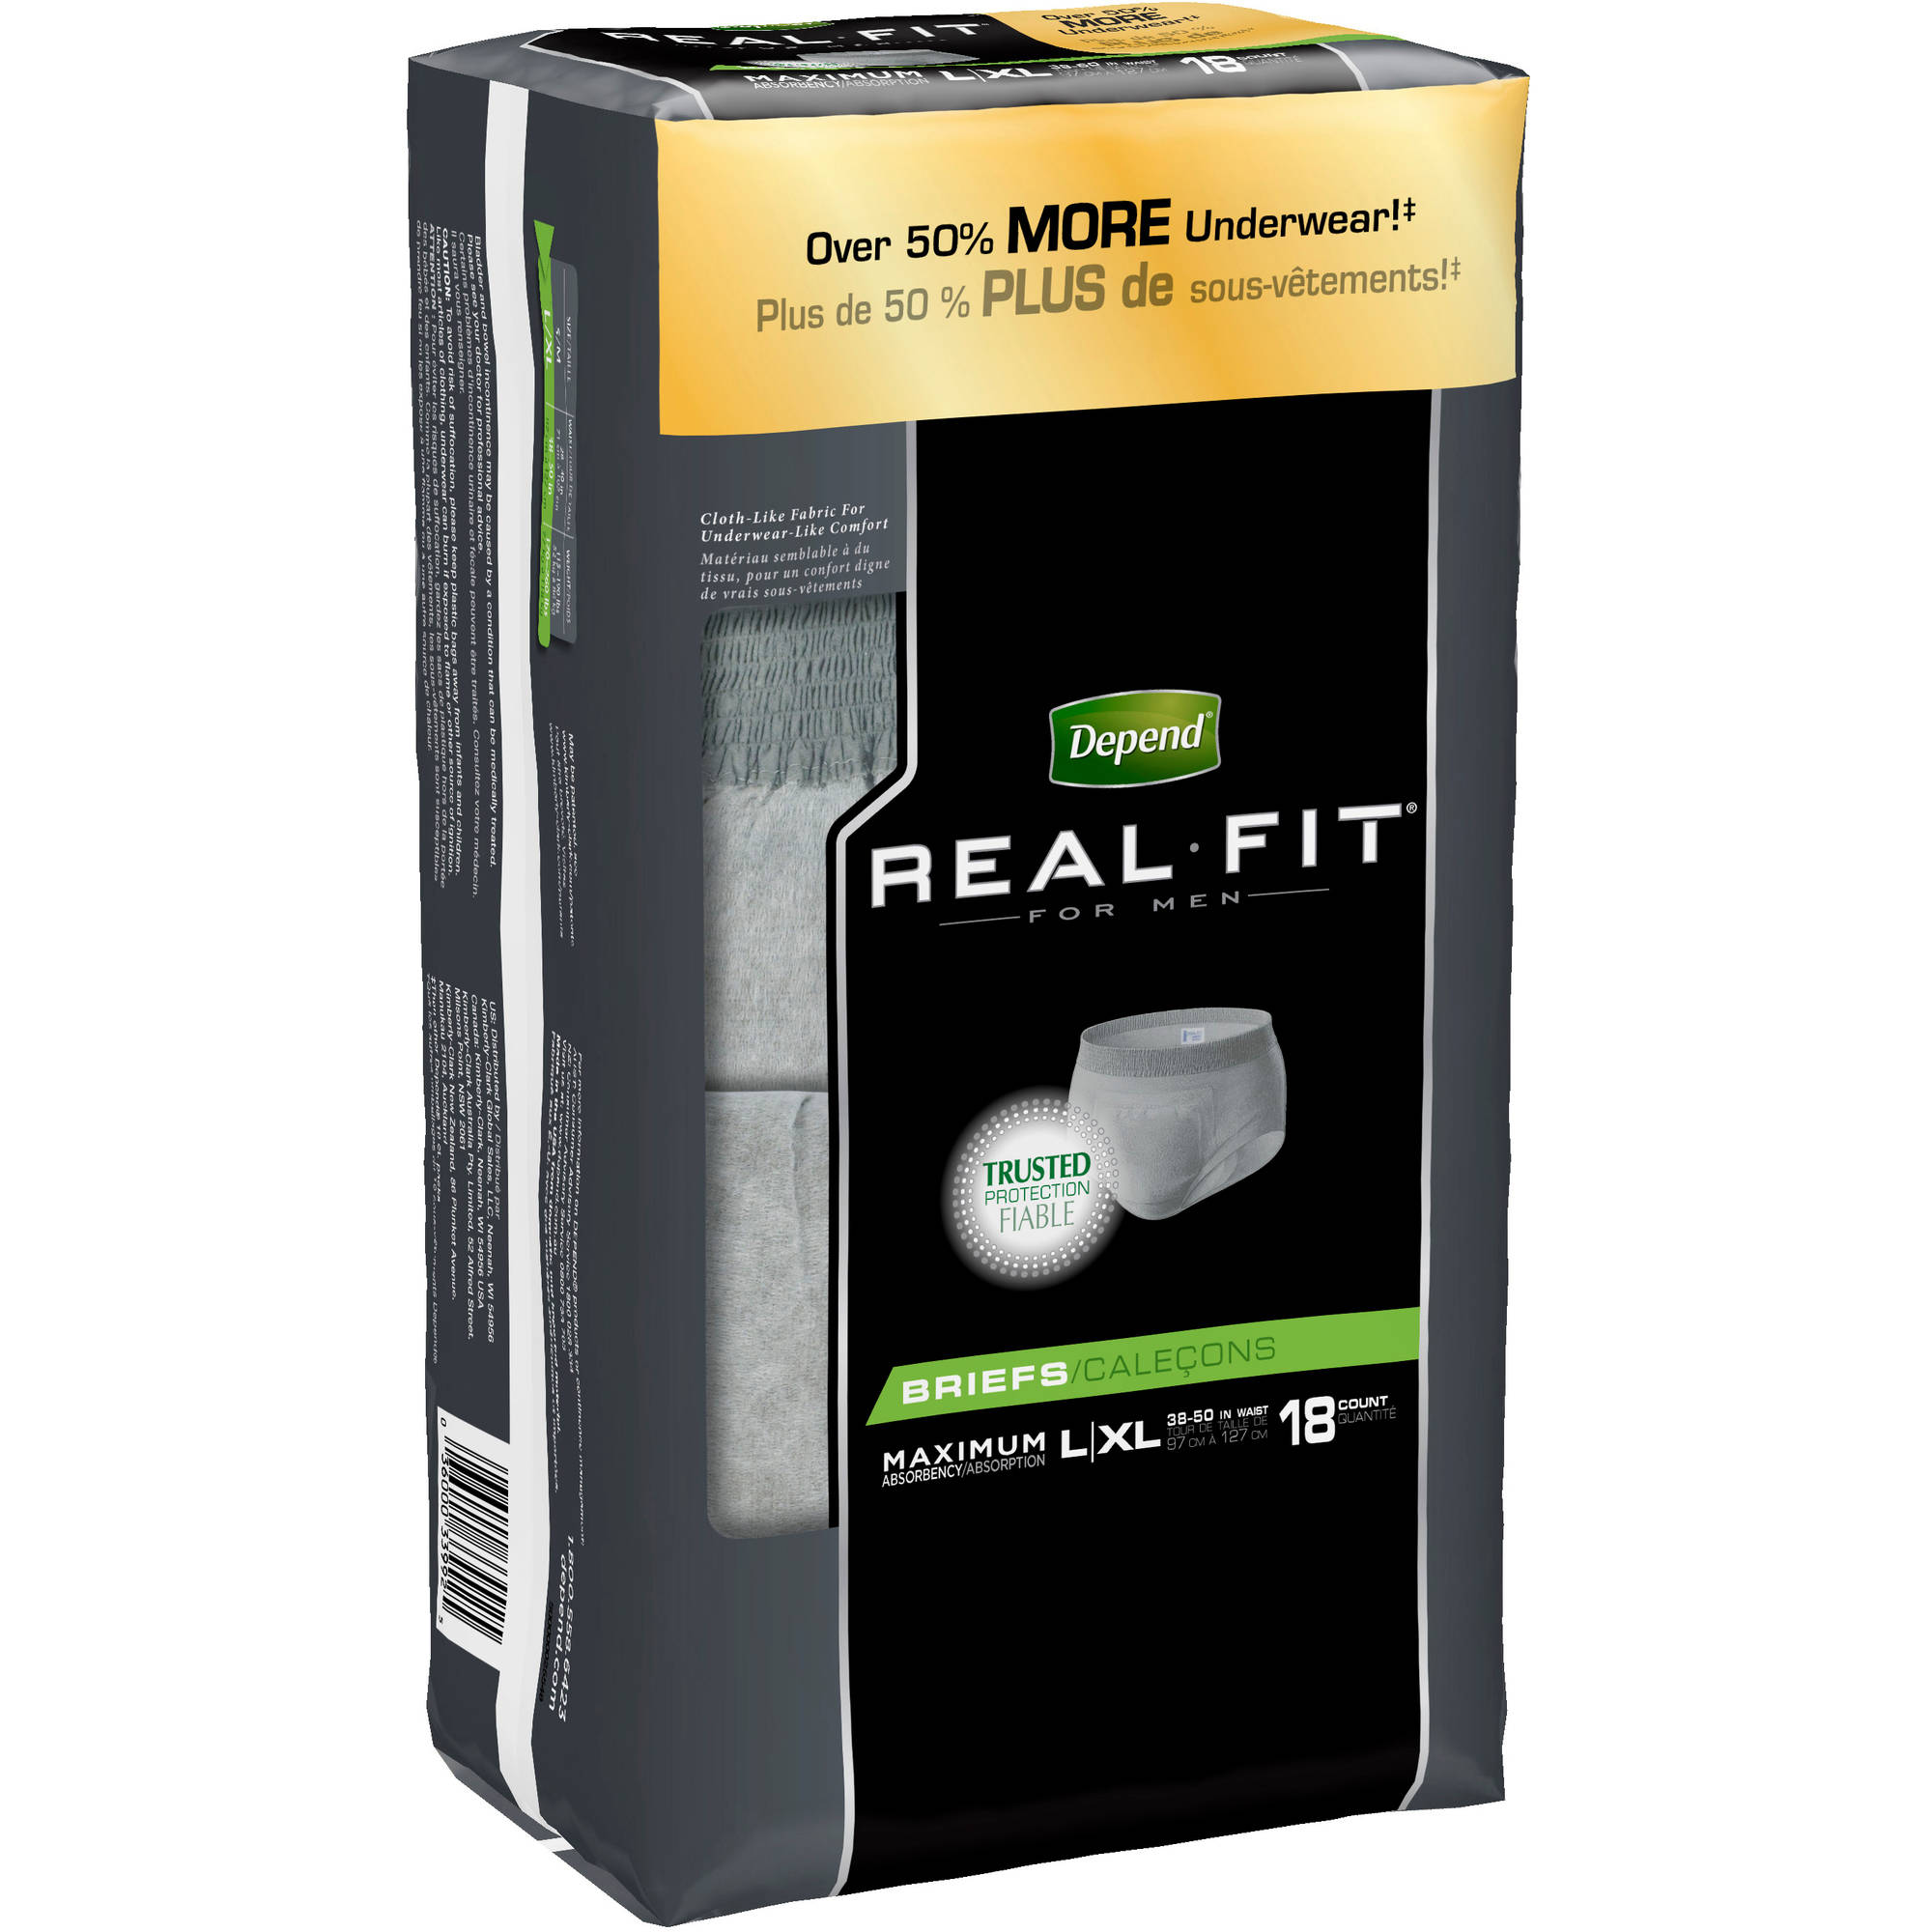 Depend Real Fit Incontinence Briefs for Men, Maximum Absorbency, L/XL (Choose Your Count)